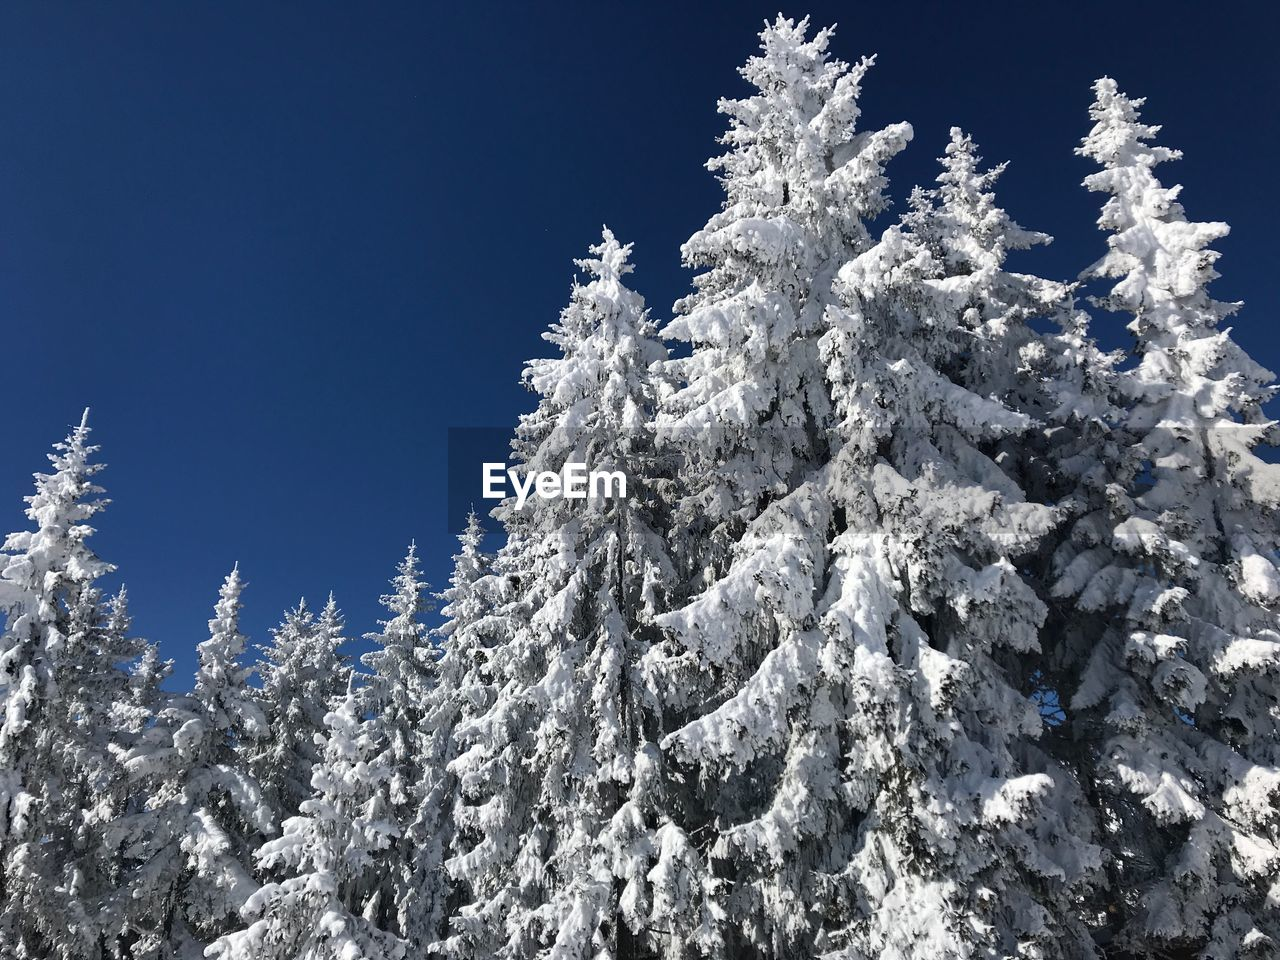 nature, winter, low angle view, cold temperature, snow, beauty in nature, day, no people, outdoors, tranquility, tree, clear sky, sunlight, scenics, blue, growth, sky, mountain